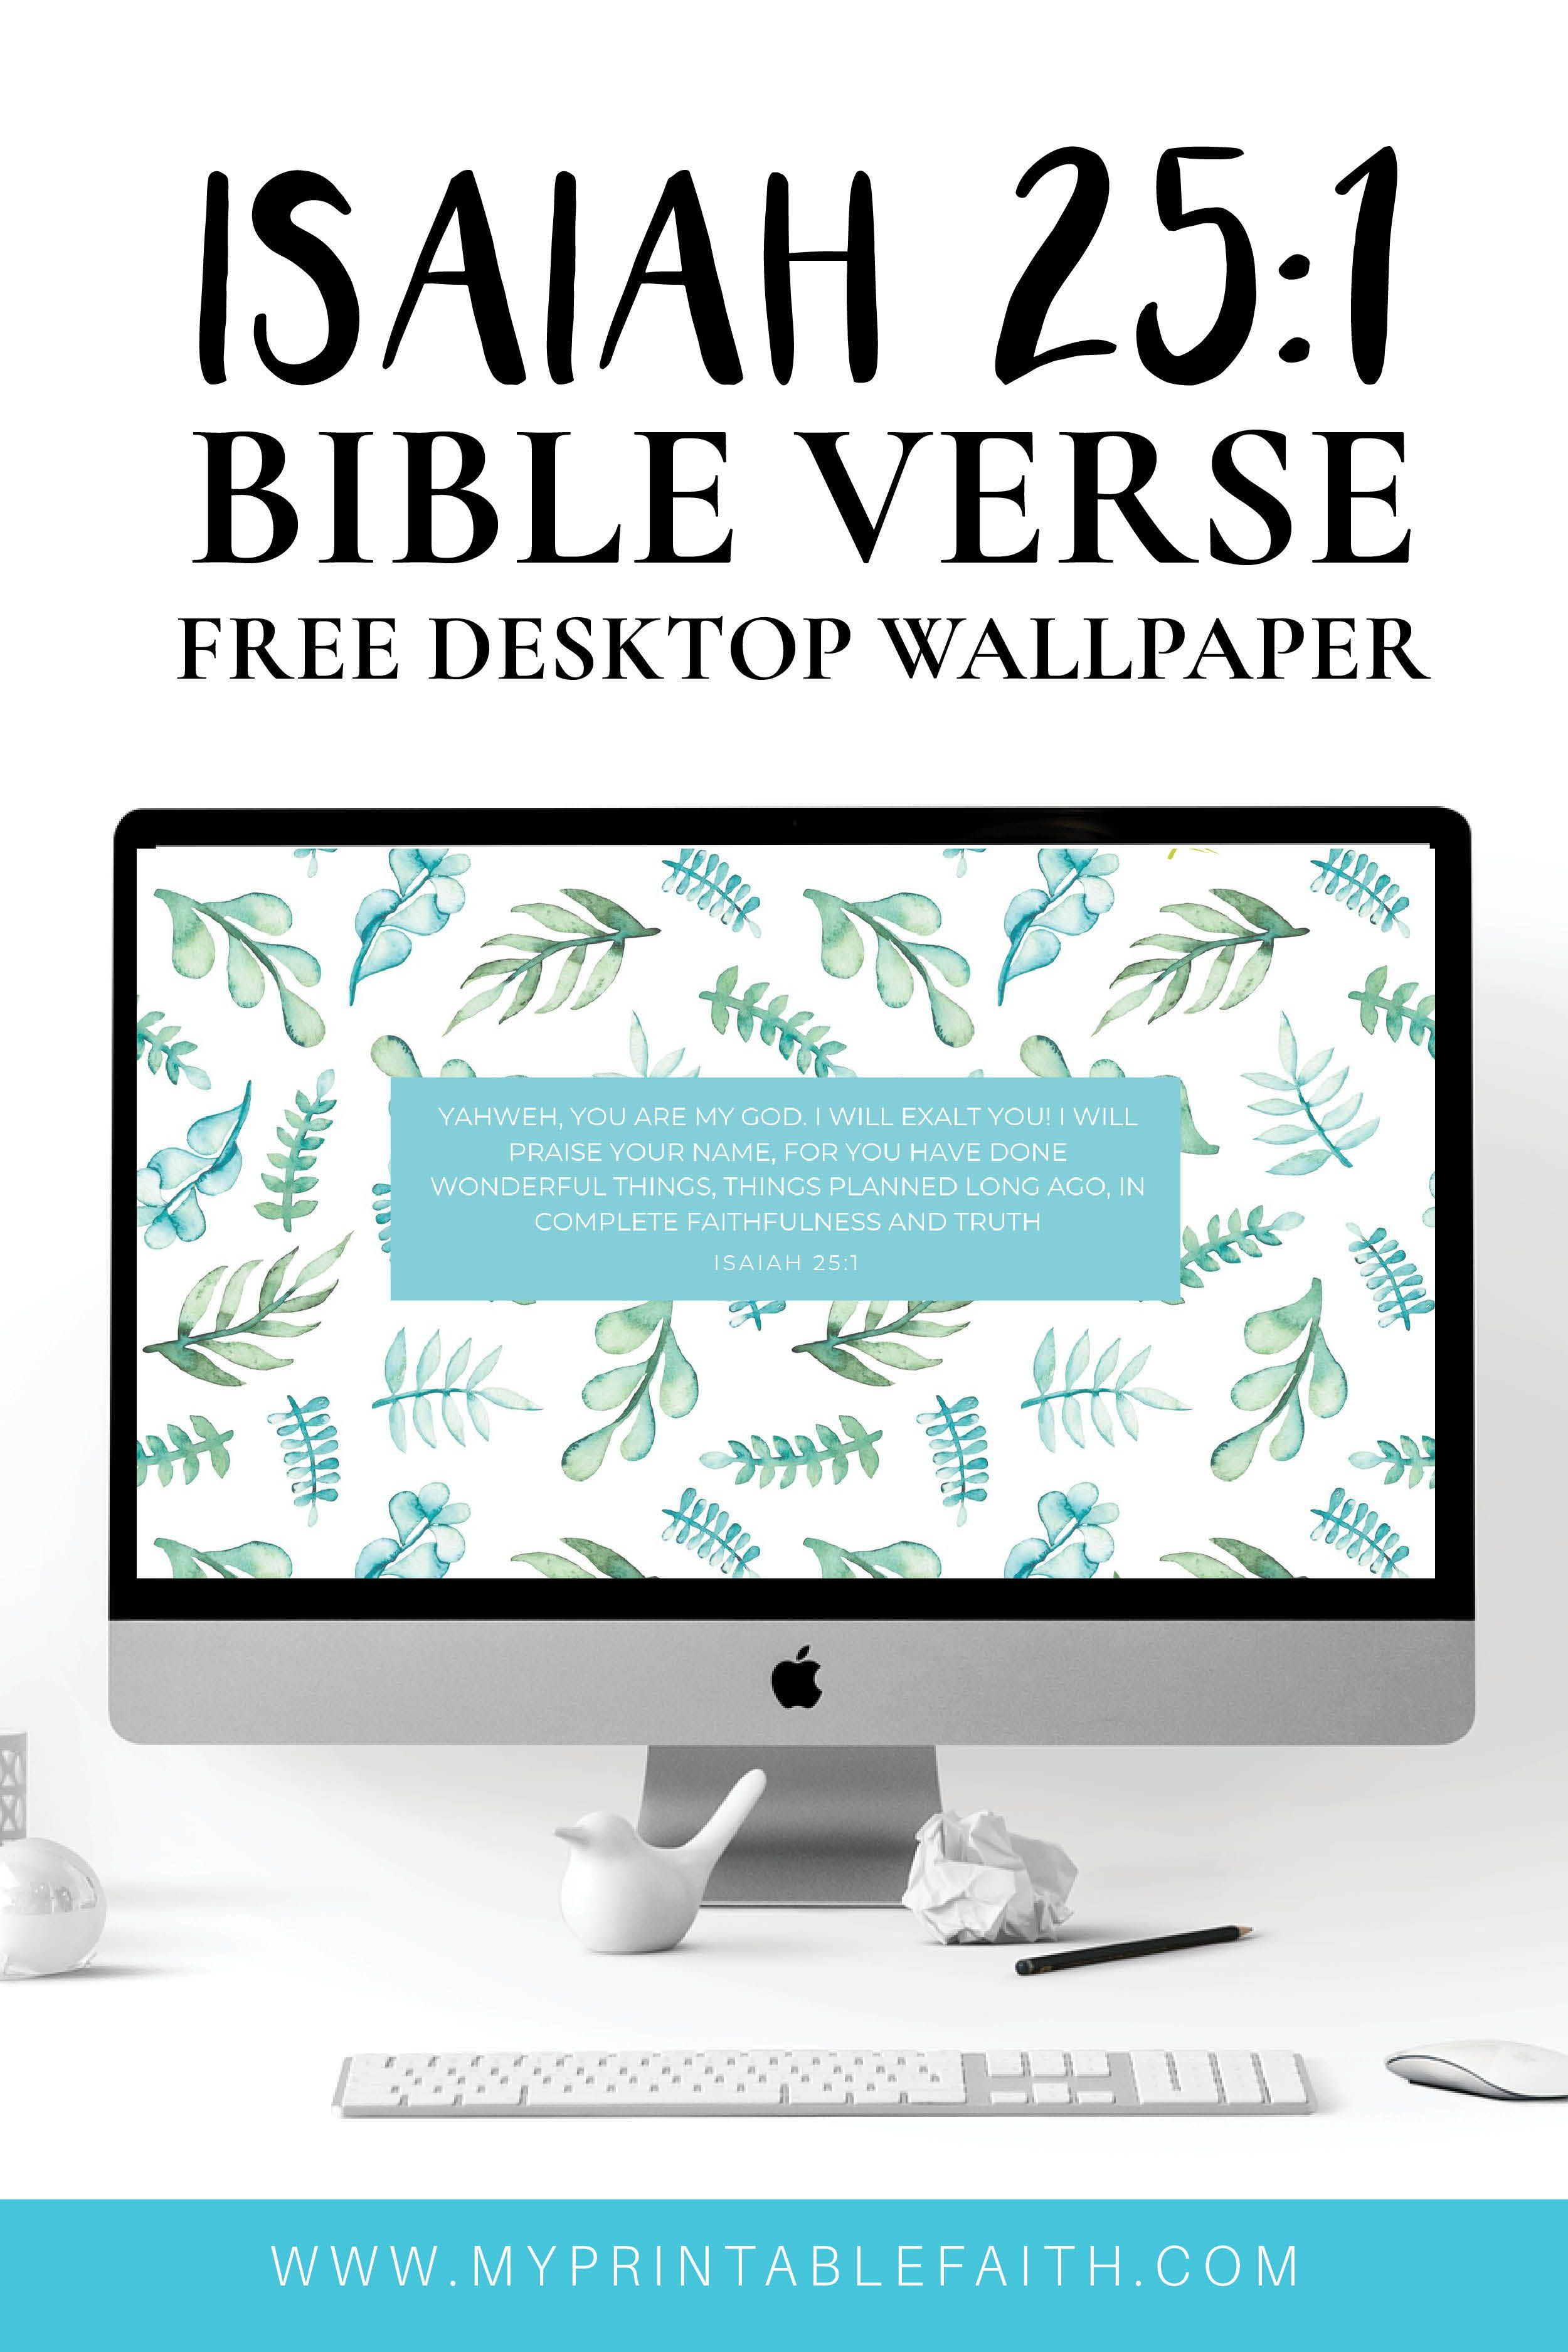 Download Free Desktop Wallpaper To Keep On Your Computer Screen Whilst You Work To Rem Bible Verse Desktop Wallpaper Free Desktop Wallpaper Scripture Wallpaper